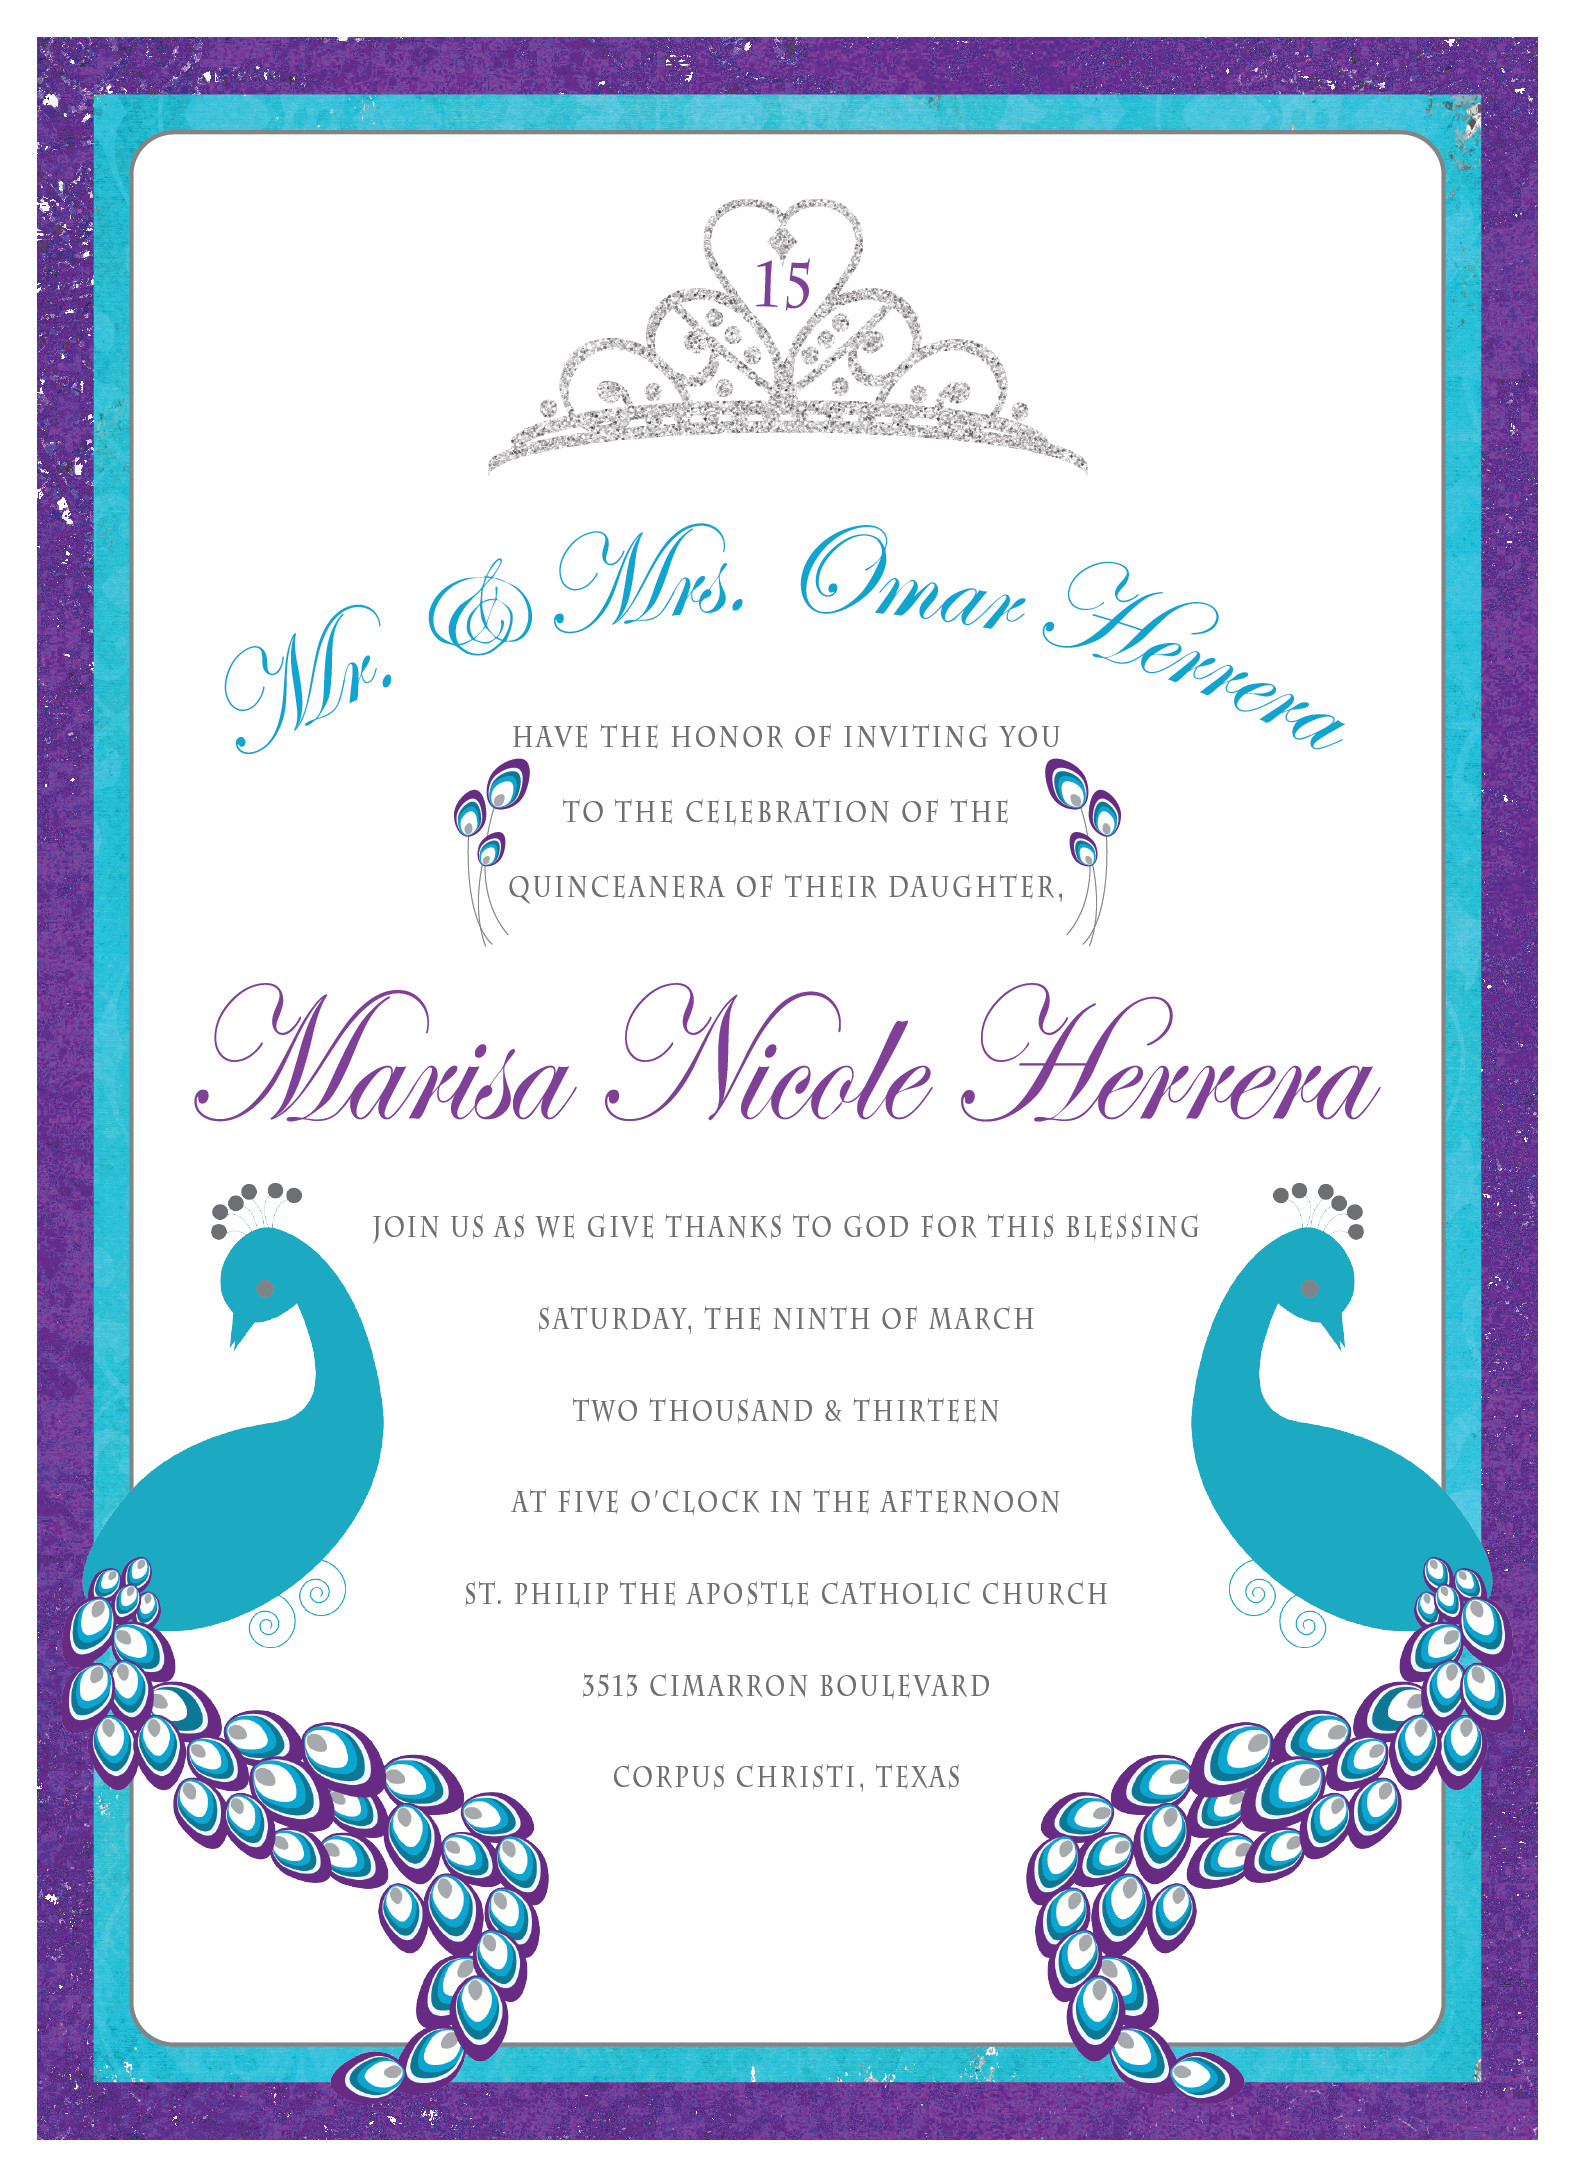 Printable Quinceanera Invitations Free From Ulyssesroom Created With - Free Printable Quinceanera Invitations